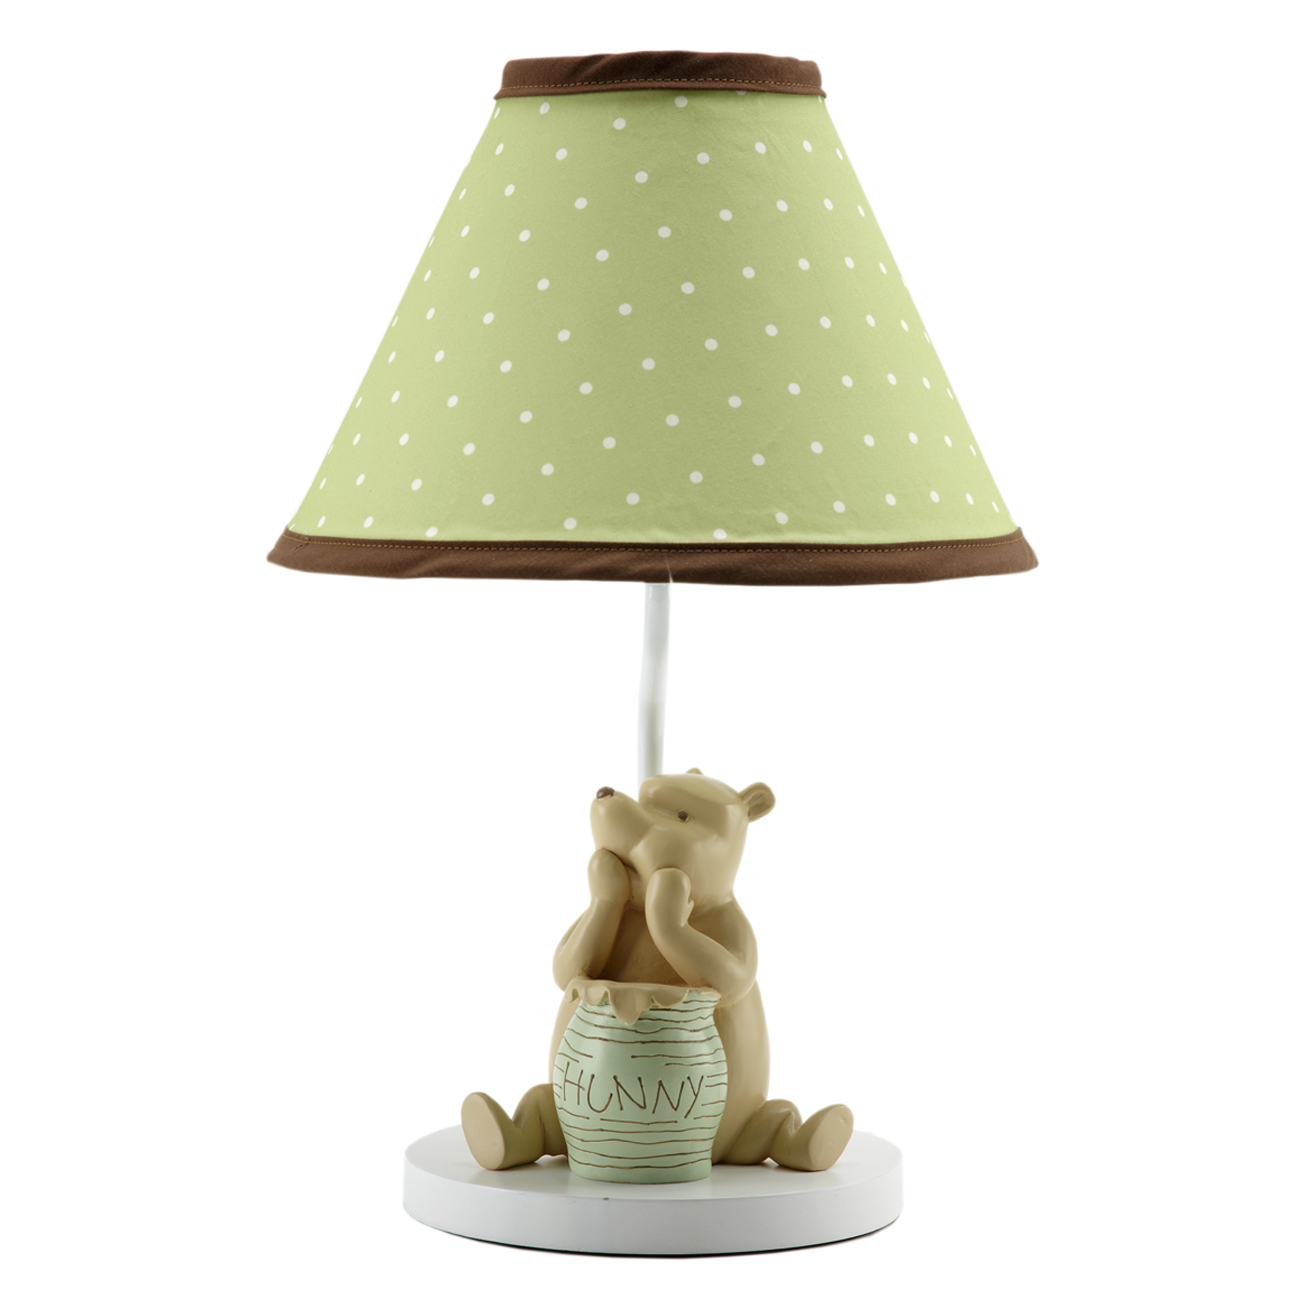 Lamps For Baby Nursery Disney My Friend Pooh Lamp And Shade Baby Nursery